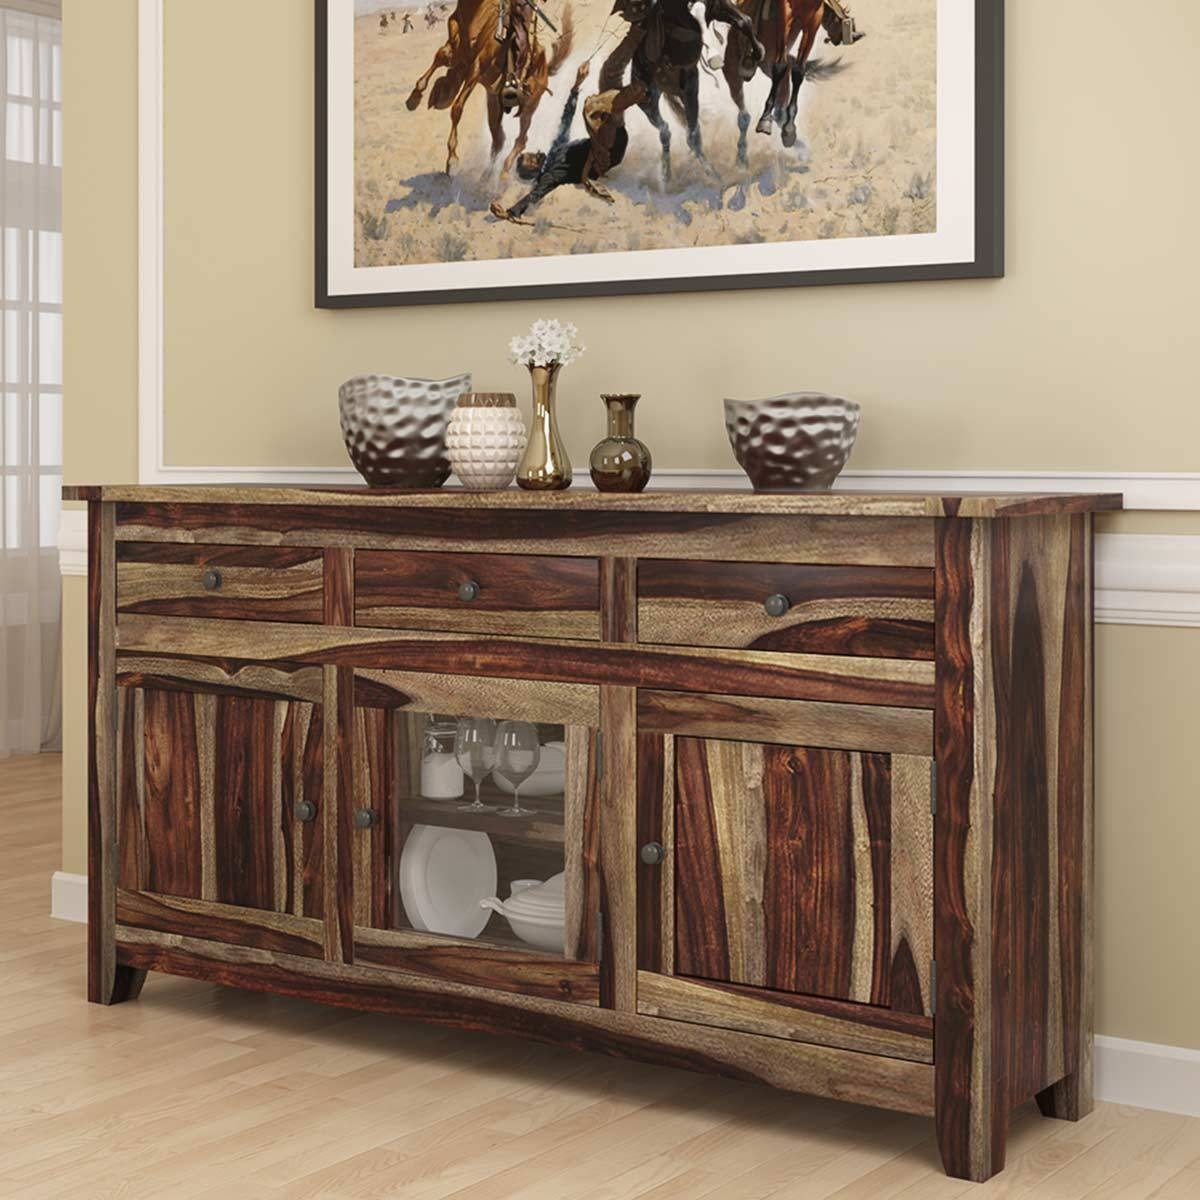 Modern Rustic Solid Wood Glass Door 3 Drawer Sideboard Cabinet pertaining to Sideboards With Glass Doors and Drawers (Image 9 of 15)